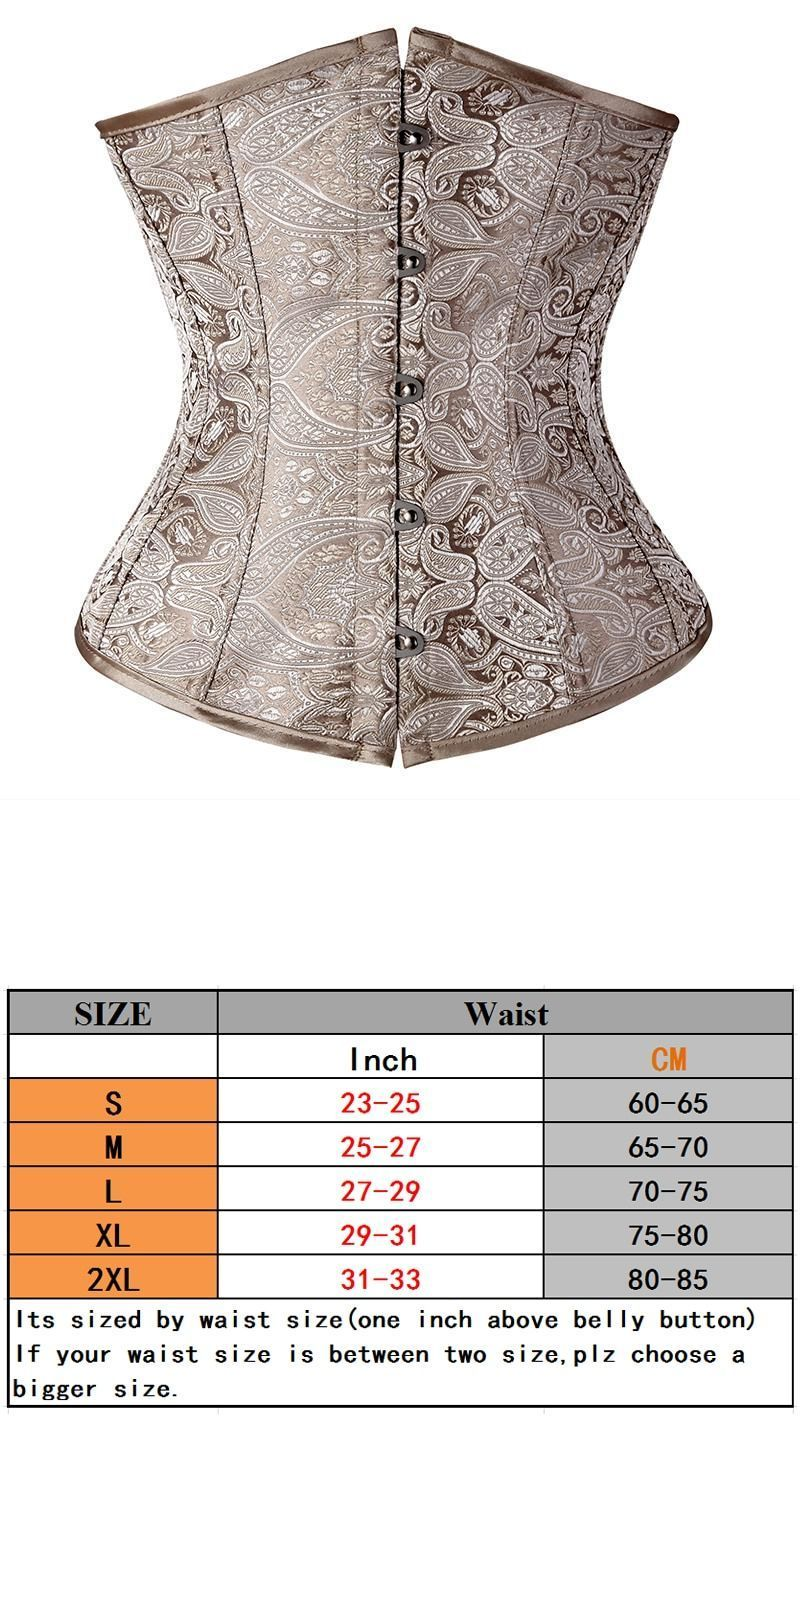 bcaa00ec81 Floral pattern underbust vintage waist trainer corset top goth bustiers  boned lace up s-2xl read our size chart tfs  women  bustiers     corsets   solid ...